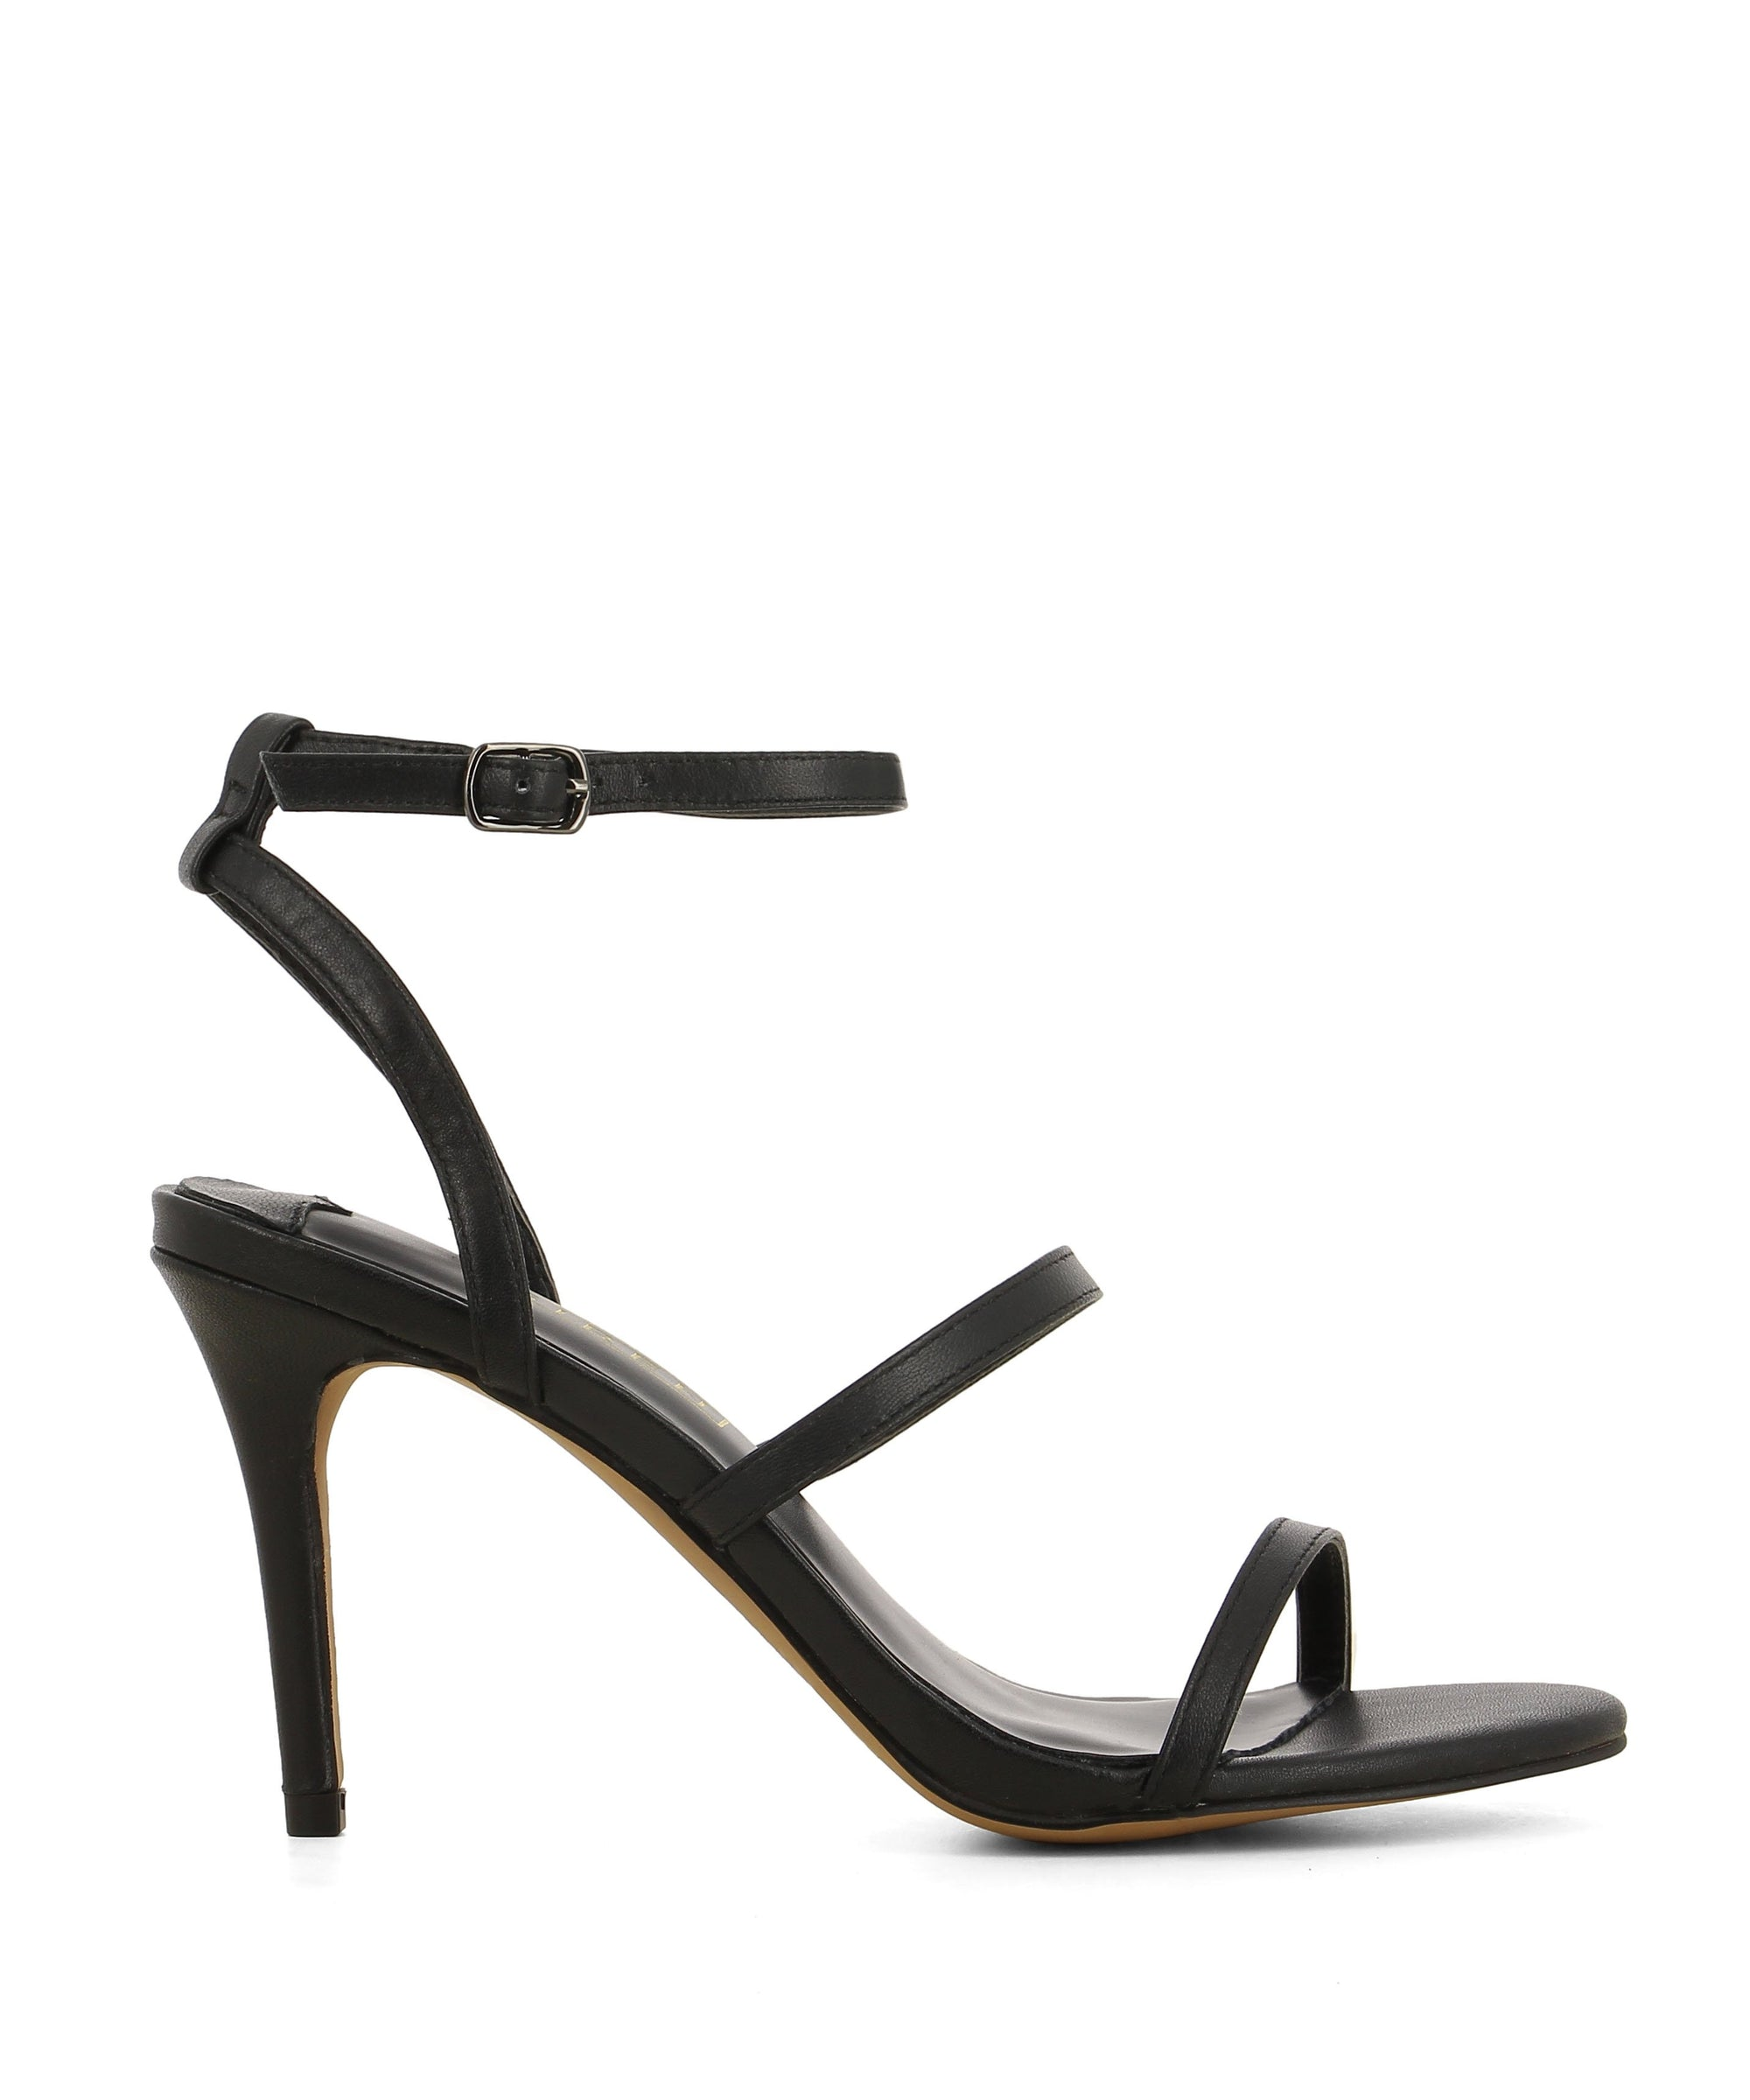 Black leather strappy heeled sandals that have a silver buckle fastening and features a 9 cm stiletto heel and a round toe by Siren.